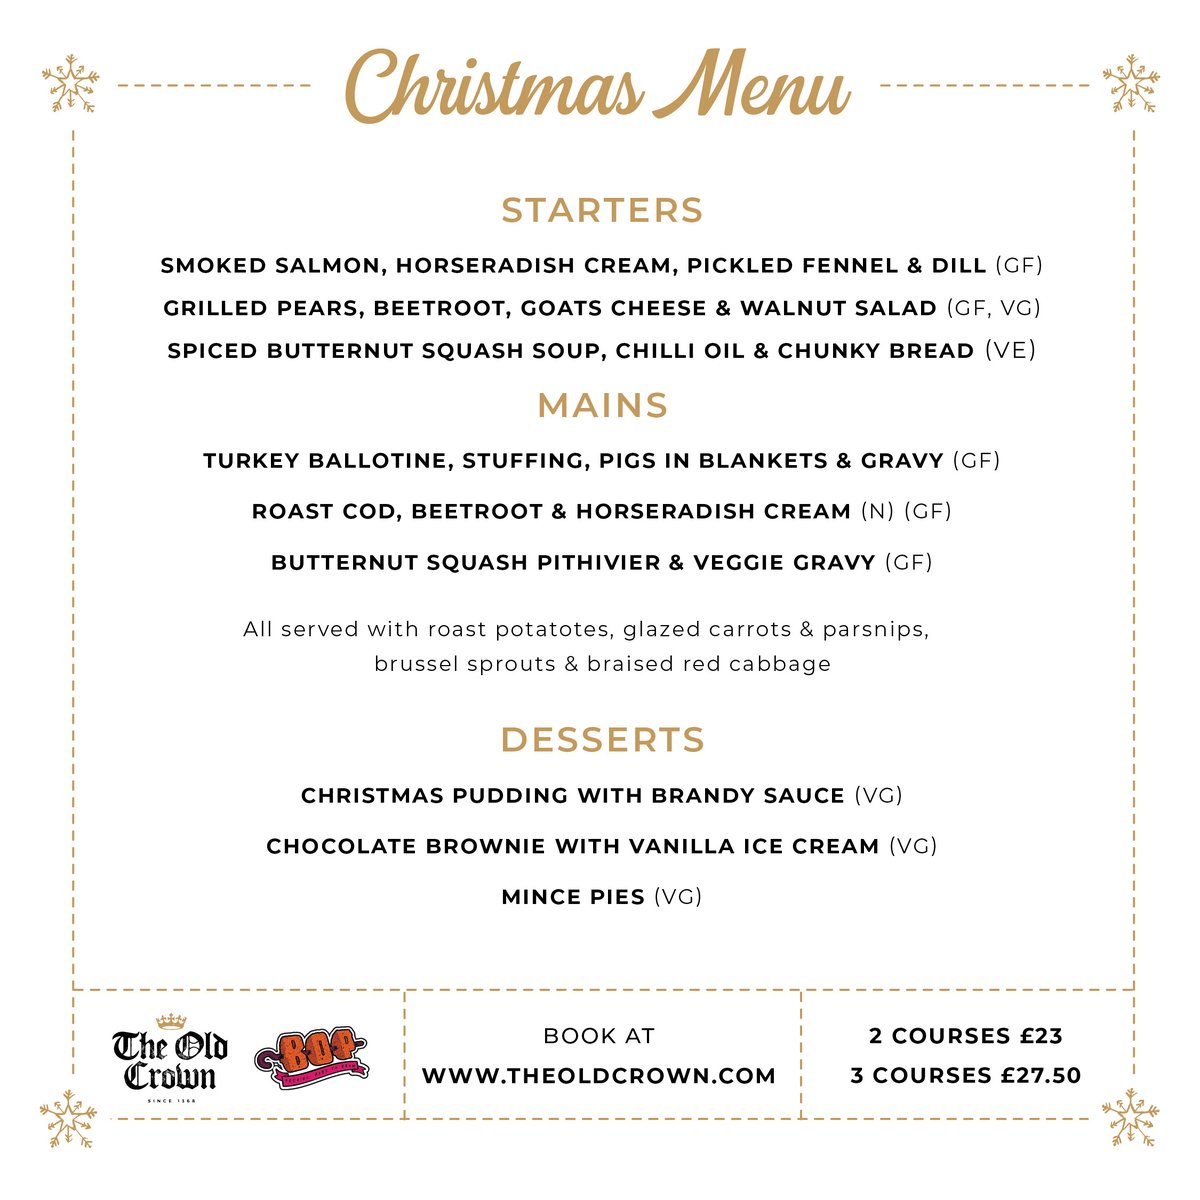 Good news for you forward-thinking Christmas planners... We've teamed up with Bop Kebabs to bring you the finest festive menu in Digbeth with three tasty courses packed with all the delicious flavors of Christmas running through Nov + Dec🍴🎄 BOOK bit.ly/crownxmasbook